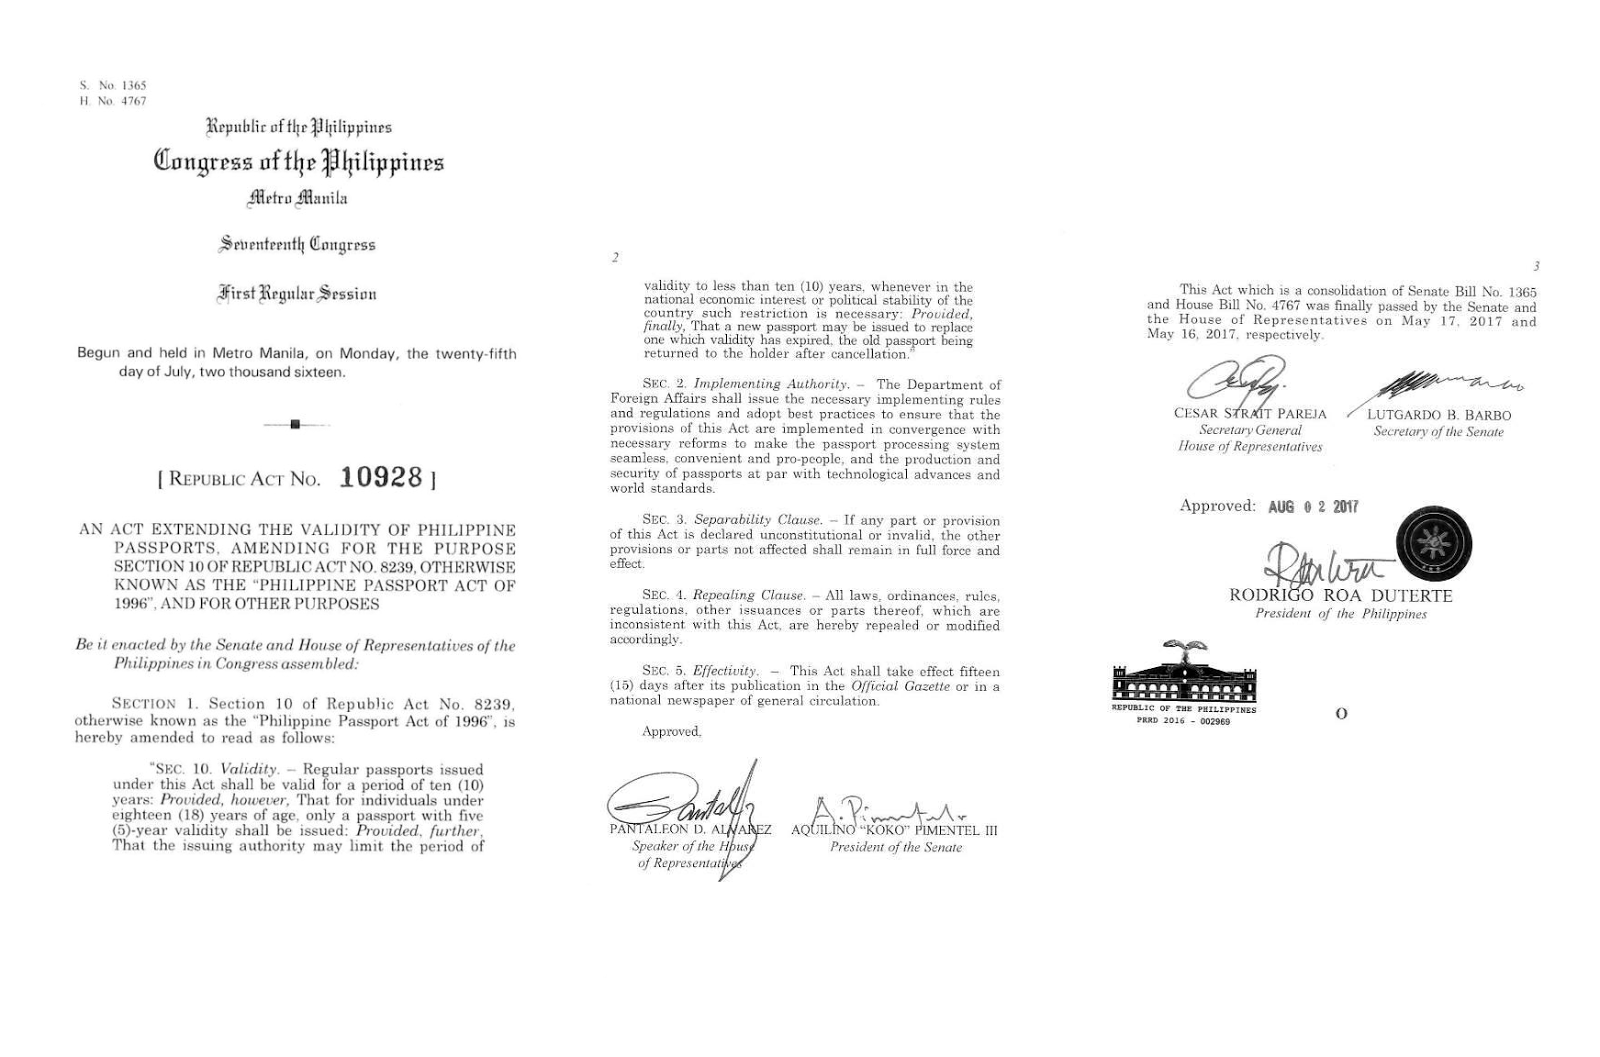 "President Rodrigo Duterte signed into law on Wednesday Republic Act 10928 extending the validity of Philippine passports to 10 years. The new law states that ""Regular passports under this act shall be valid for a period of 10 years. Provided, however, that for individuals under 18 years of age, only a passport with five-year validity shall be issued.""  Republic Act 10928 amends Republic Act 8239 or the Philippine Passport Act of 1996.  The new law also states that the issuing authority may limit the validity to less than 10 years in cases where national economic interest or political stability is at stake.  But do not get excited that the Department of Foreign Affairs will issue passports with longer validities soon. The DFA has to prepare the implementing rules and regulations of RA 10928 first, to ensure that its provisions will be implemented.  The President also signed Republic Act 10930, which extends the length of the driver's license's validity to 5 years. The law amends Section 23 of RA 4136 or the Land Transportation and Traffic Code, which set a three-year validity for the license.  ""Except for student permits, all drivers' licenses shall be valid for five years reckoned from the birth date of the licensee, unless sooner revoked or suspended,"" the new law says.  Under the law's Section 23, a driver holding a license with a 5-year validity may even be granted a license with a 10-year validity upon renewal if found that he or she has ""not committed any violation of RA 4136 and other traffic laws, rules and regulations.""  The law also mandates the establishment of stricter rules before the issuance of driver's licenses.  A fine of P20,000 shall be imposed on a driver's license applicant if found to have misrepresented material information in his or her application, connived with the officer in the irregular conduct of examinations or issuance of license, falsified documents, or cheated during examinations.  Both laws will be enforced and take effect  take effect 15 days after publication in the Official Gazette or in a newspaper of general circulation. The DFA and LTO will now write and publish the implementing rules and regulations for each of their jurisdictions."